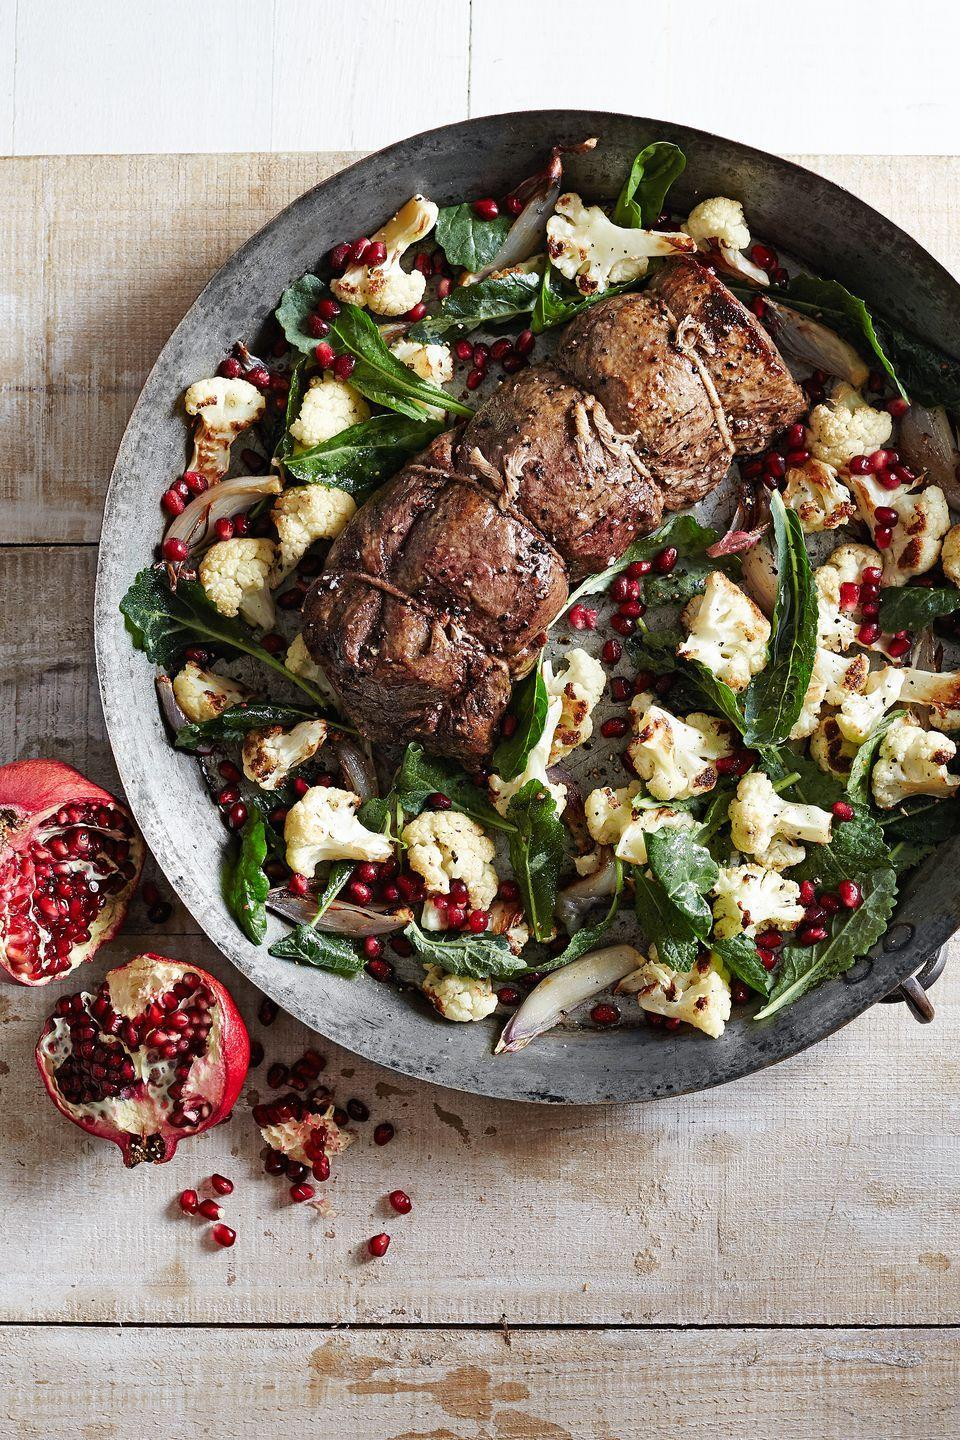 "<p>This juicy beef tenderloin is brightened by a tangy cauliflower-pomegranate salad that is sure to satisfy any crowd.</p><p><strong><a href=""https://www.countryliving.com/food-drinks/recipes/a6207/beef-tenderloin-roasted-cauliflower-pomegranate-salad-recipe-clx1214/"" rel=""nofollow noopener"" target=""_blank"" data-ylk=""slk:Get the recipe"" class=""link rapid-noclick-resp"">Get the recipe</a>.</strong></p><p><strong><a class=""link rapid-noclick-resp"" href=""https://www.amazon.com/Nordic-Ware-Natural-Aluminum-Commercial/dp/B0049C2S32/?tag=syn-yahoo-20&ascsubtag=%5Bartid%7C10050.g.738%5Bsrc%7Cyahoo-us"" rel=""nofollow noopener"" target=""_blank"" data-ylk=""slk:SHOP BAKING SHEETS"">SHOP BAKING SHEETS</a><br></strong></p>"